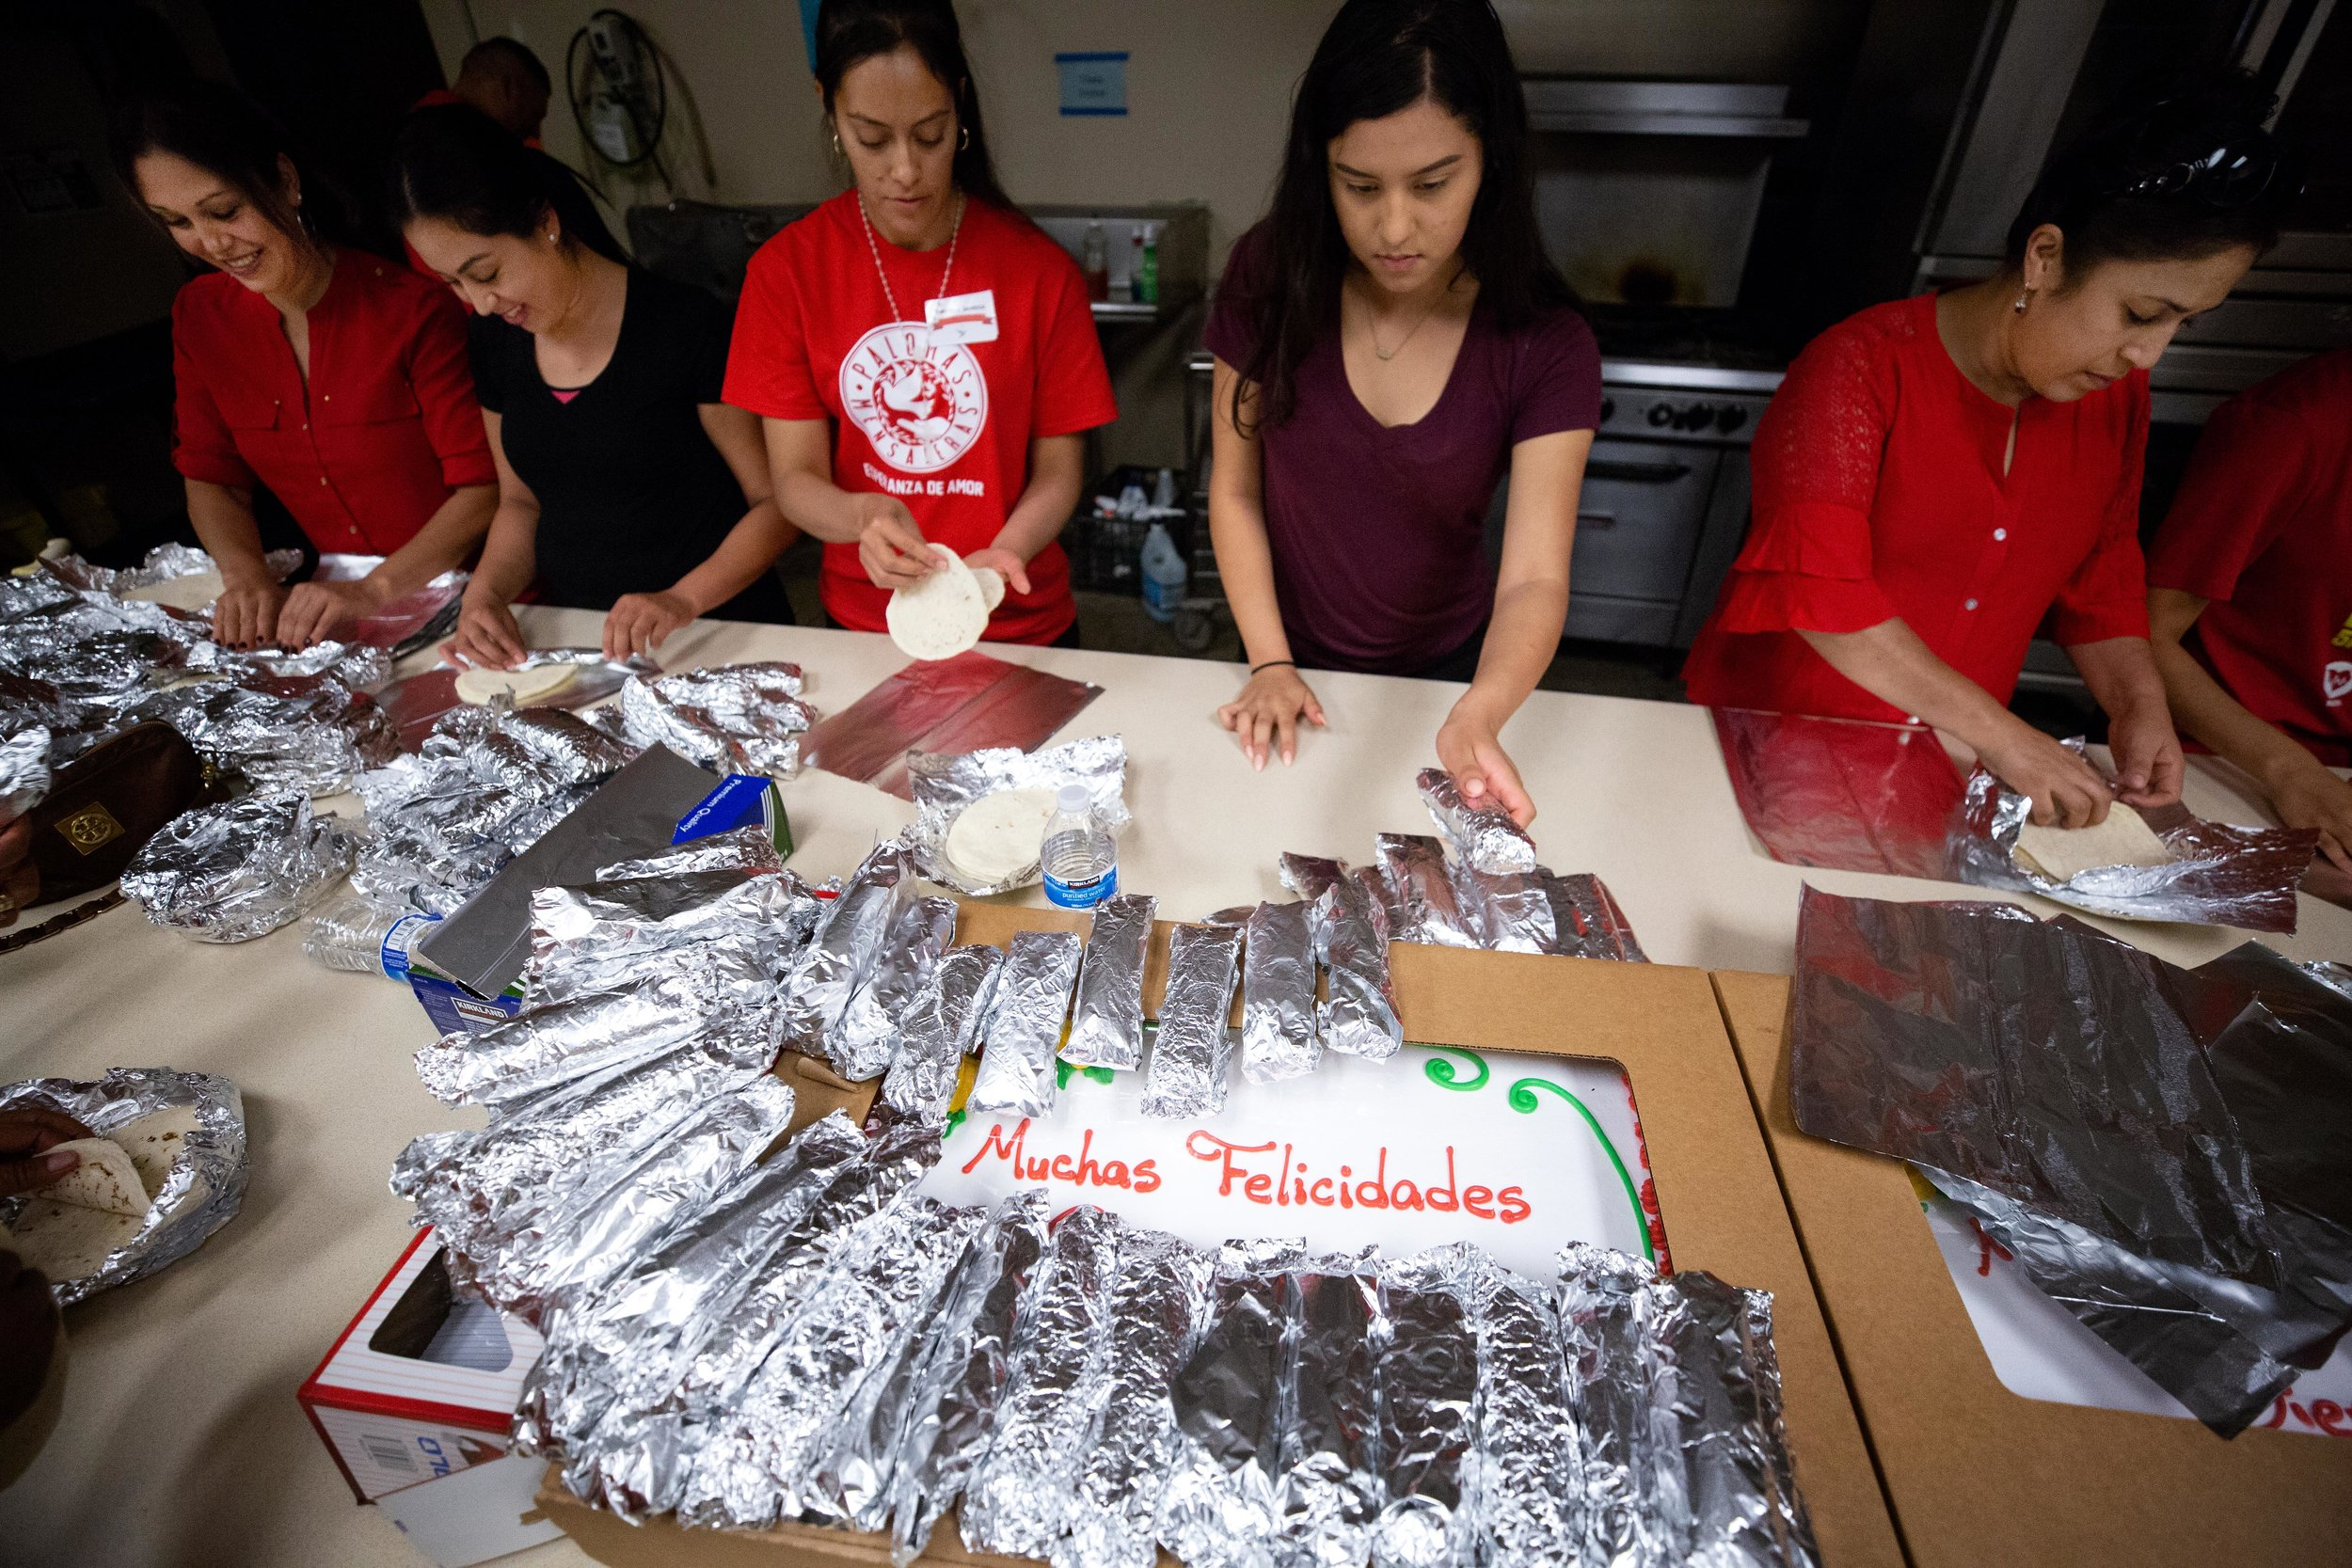 ROUND ROCK, TX. August 10, 2018. Volunteers Lizbeth Hernandez (middle), 14, and Monica Barriga (left) roll tortillas during a family reunification event. Palomas Mensajeras (homing pigeons) came to the Austin area to reunite families who've been separated for over a decade because of undocumented status. Montinique Monroe for KUT News